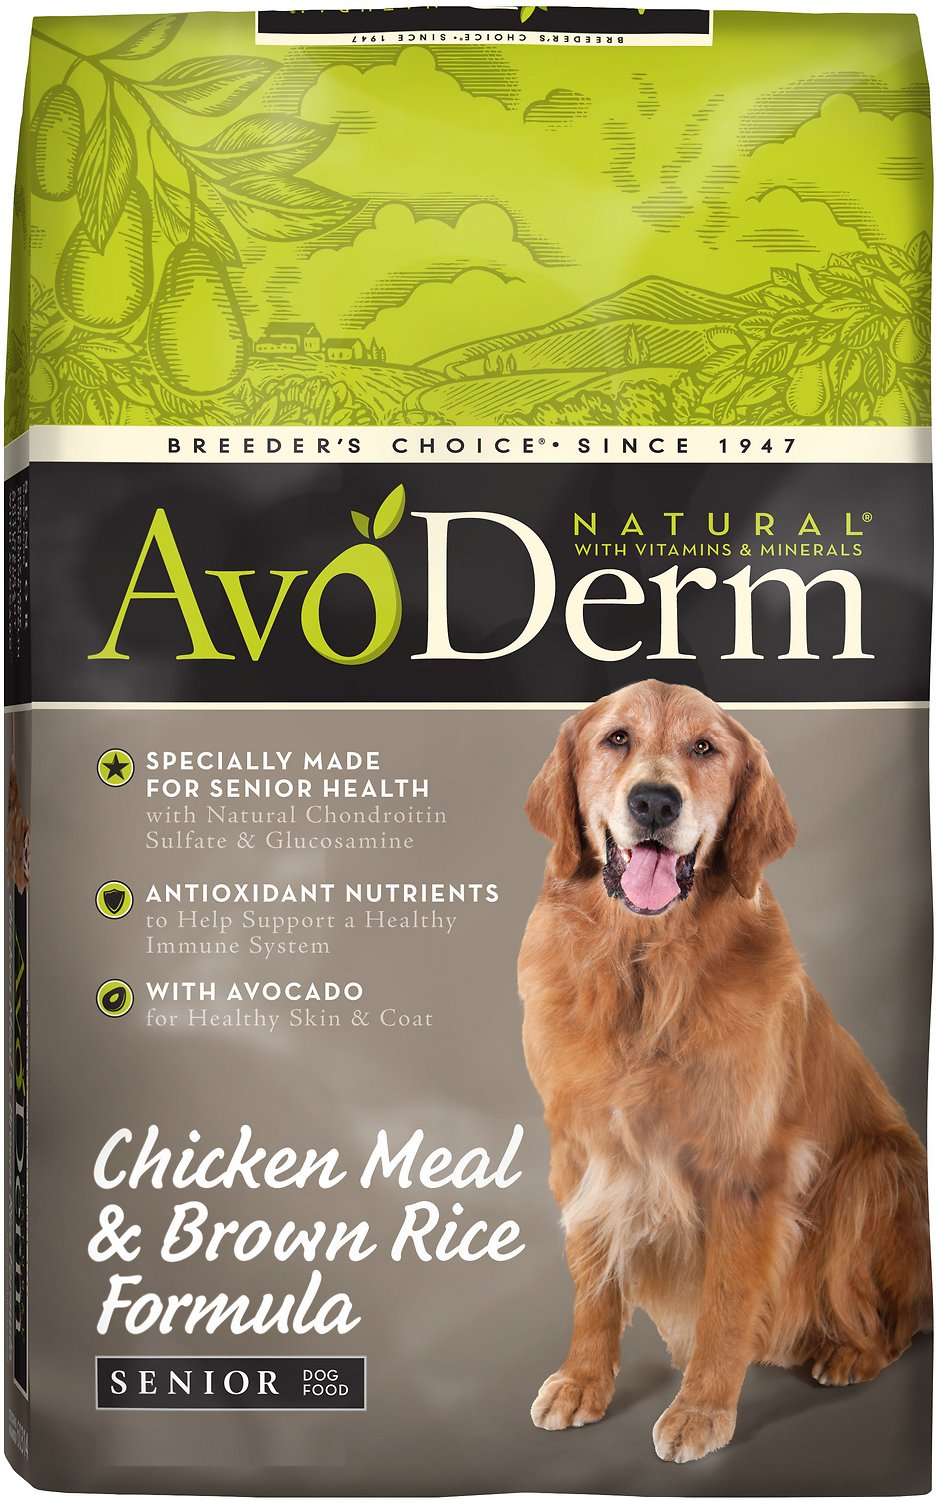 Avoderm Puppy Food Reviews